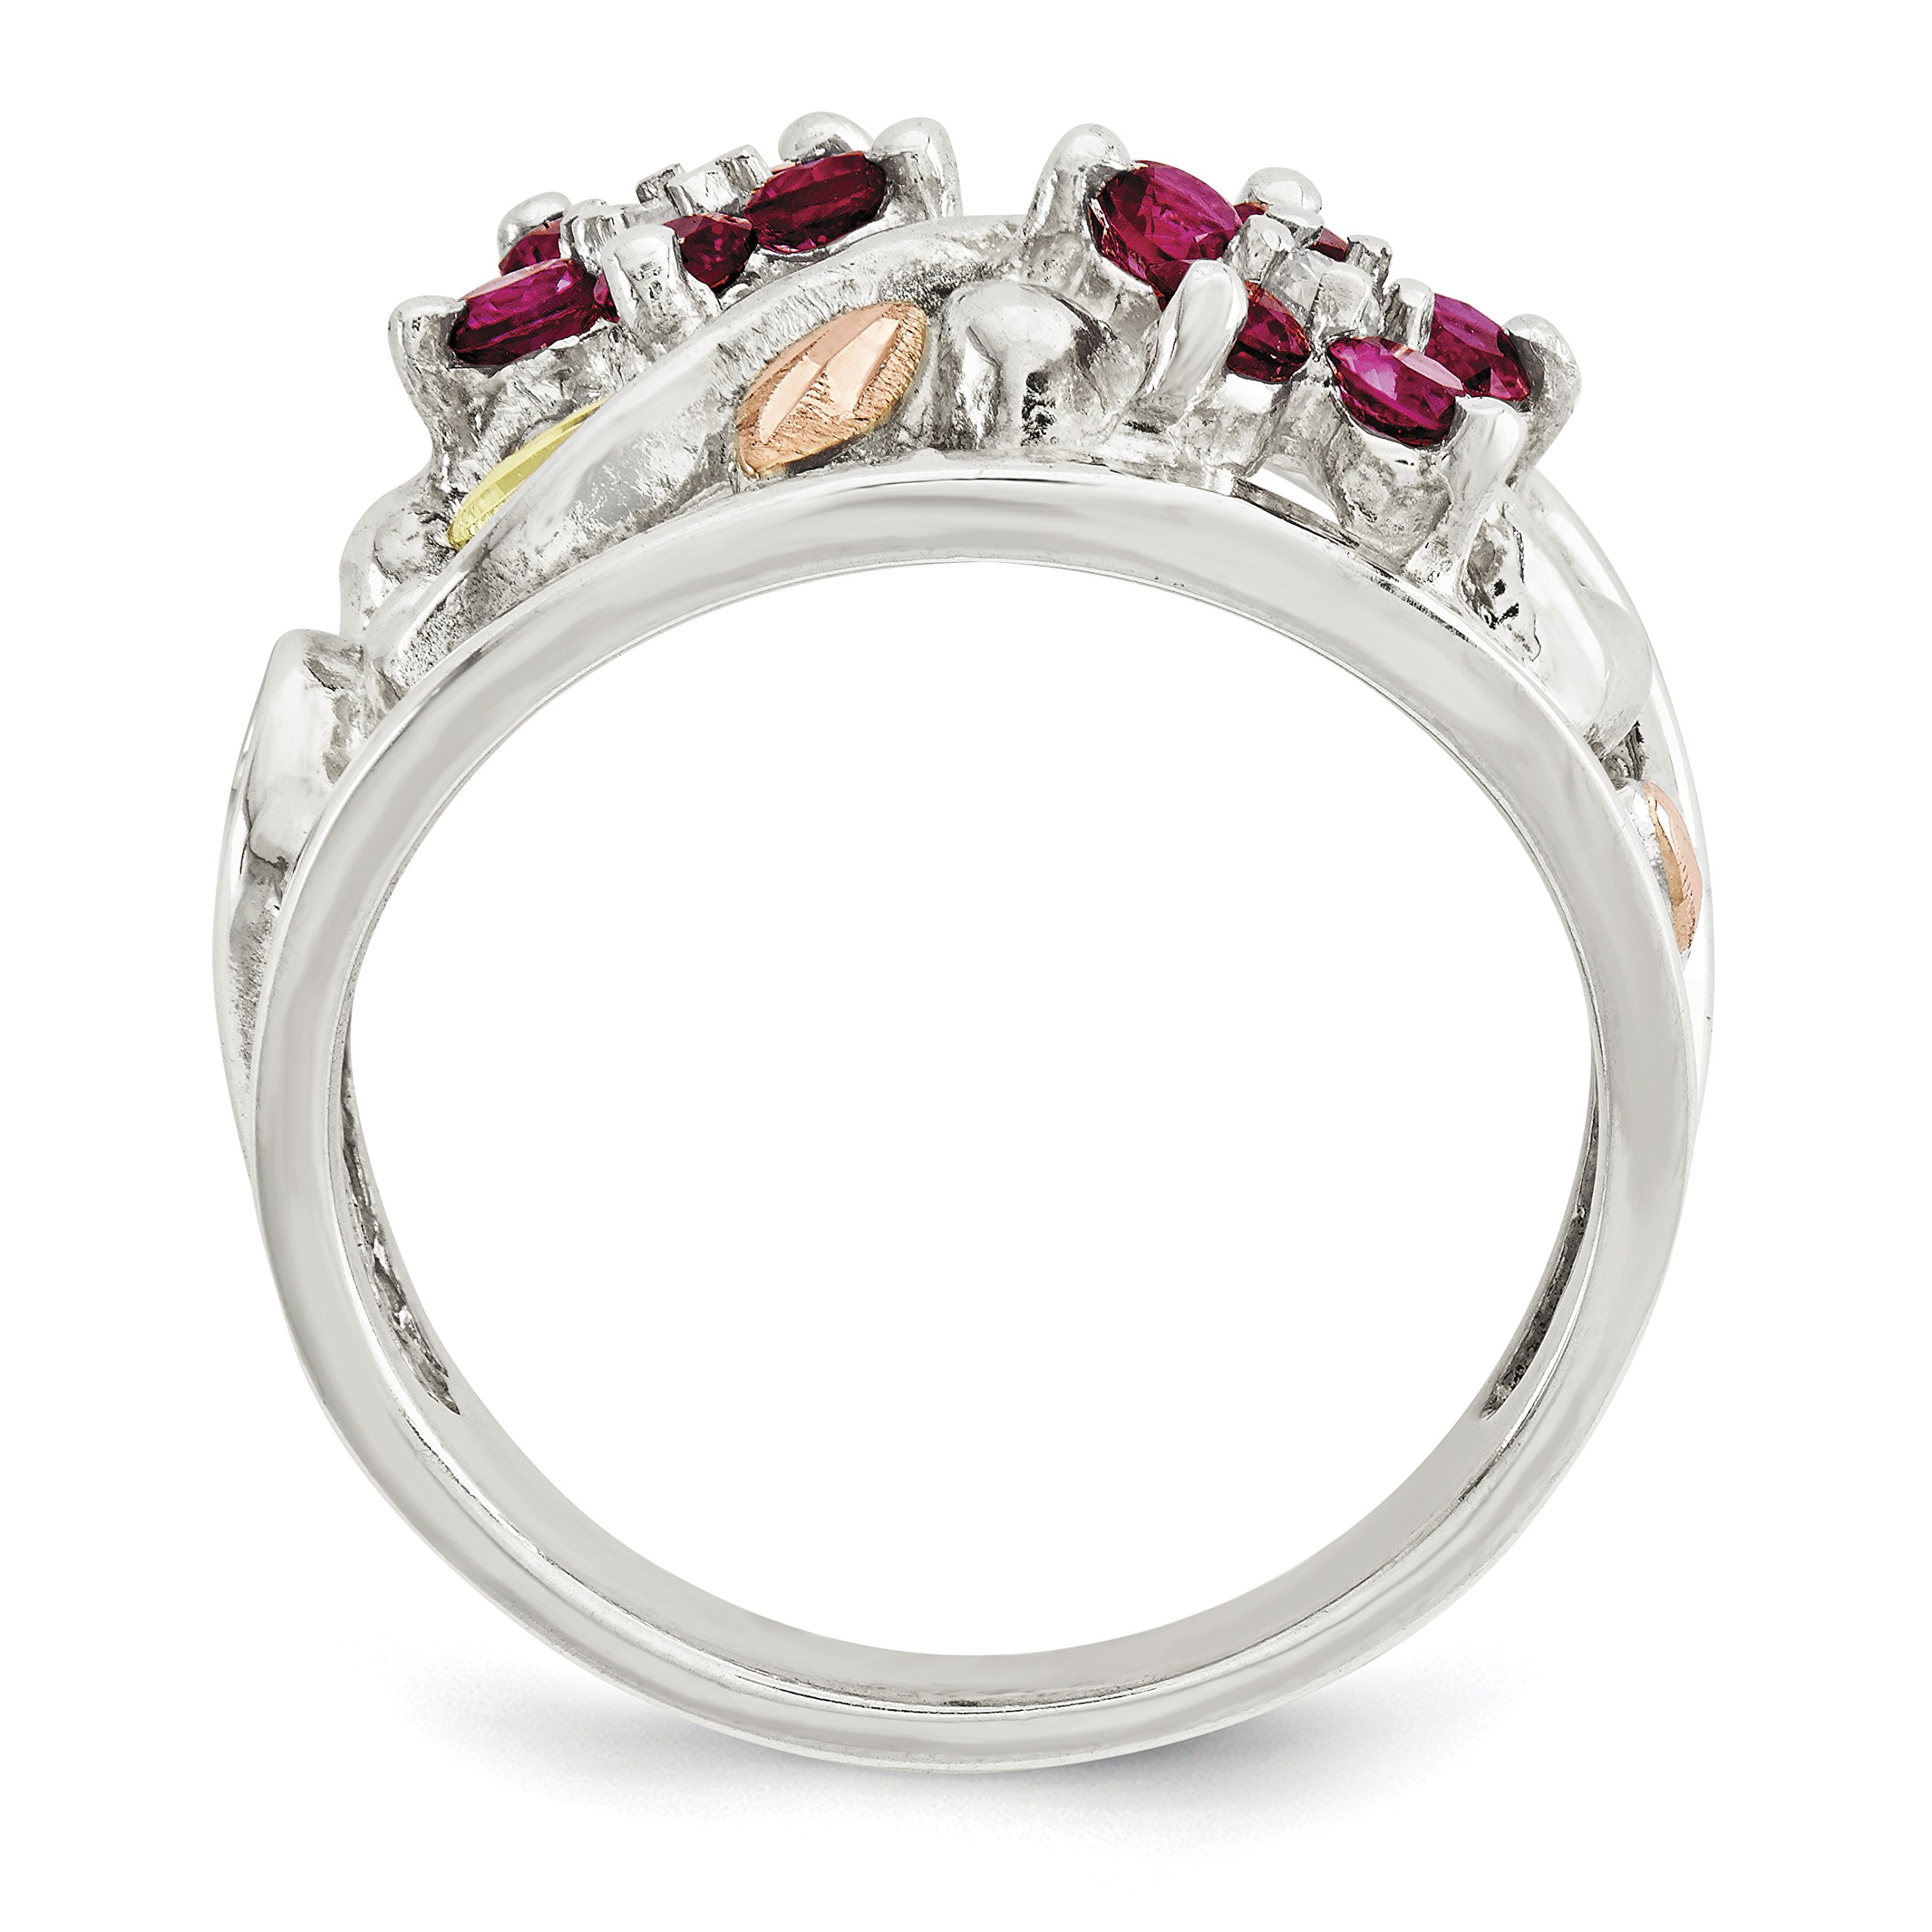 ICE CARATS 925 Sterling Silver 12k Flower Cubic Zirconia Cz Band Ring Size 6.00 Flowers/leaf Fine Jewelry Gift Set For Women Heart by ICE CARATS (Image #2)